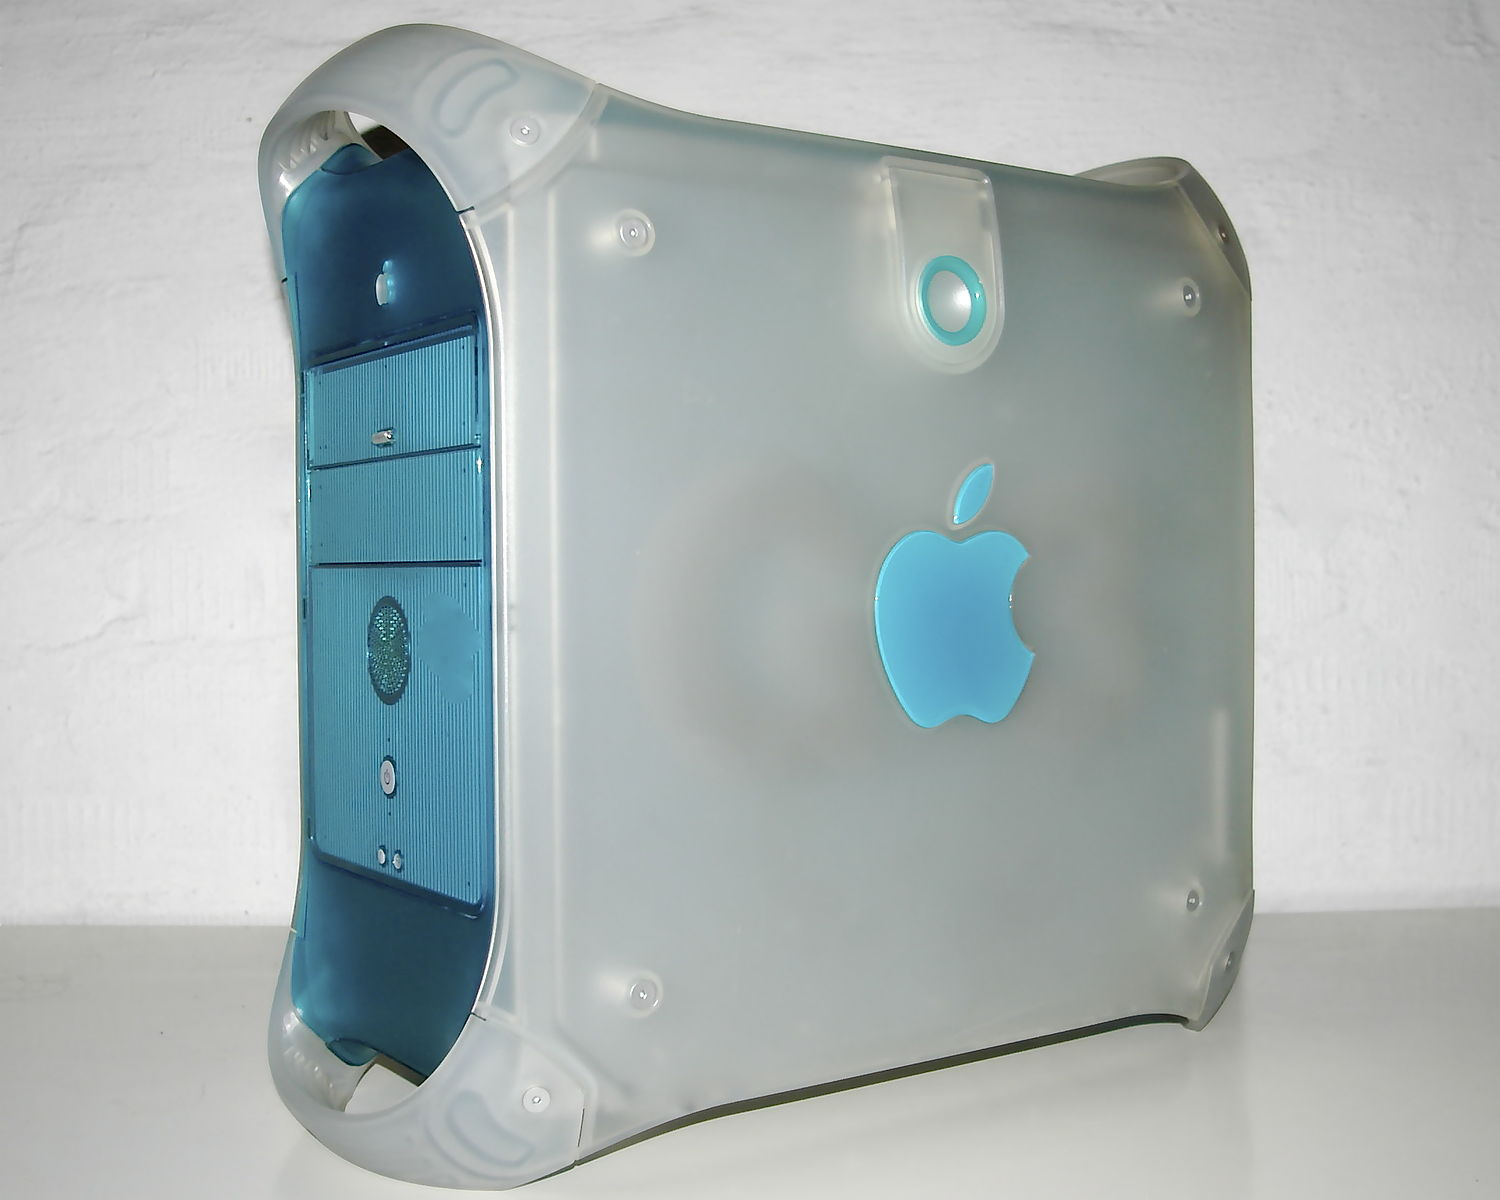 Powermac G3 yosemite tower